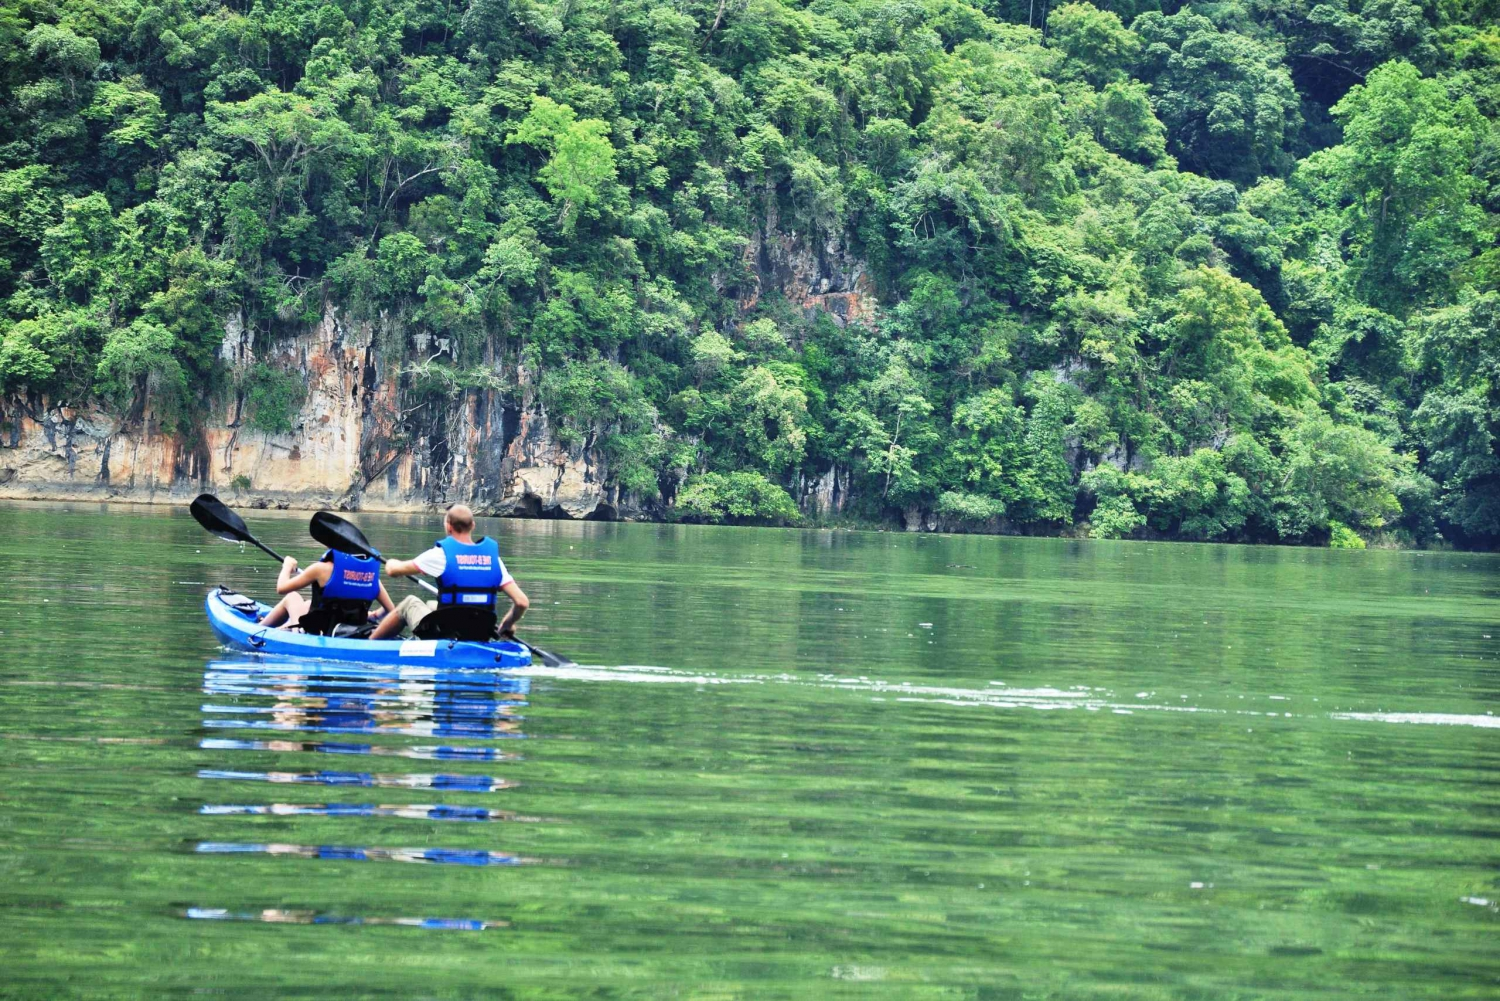 From Hanoi: Two Day Adventure to Ba Be National Park